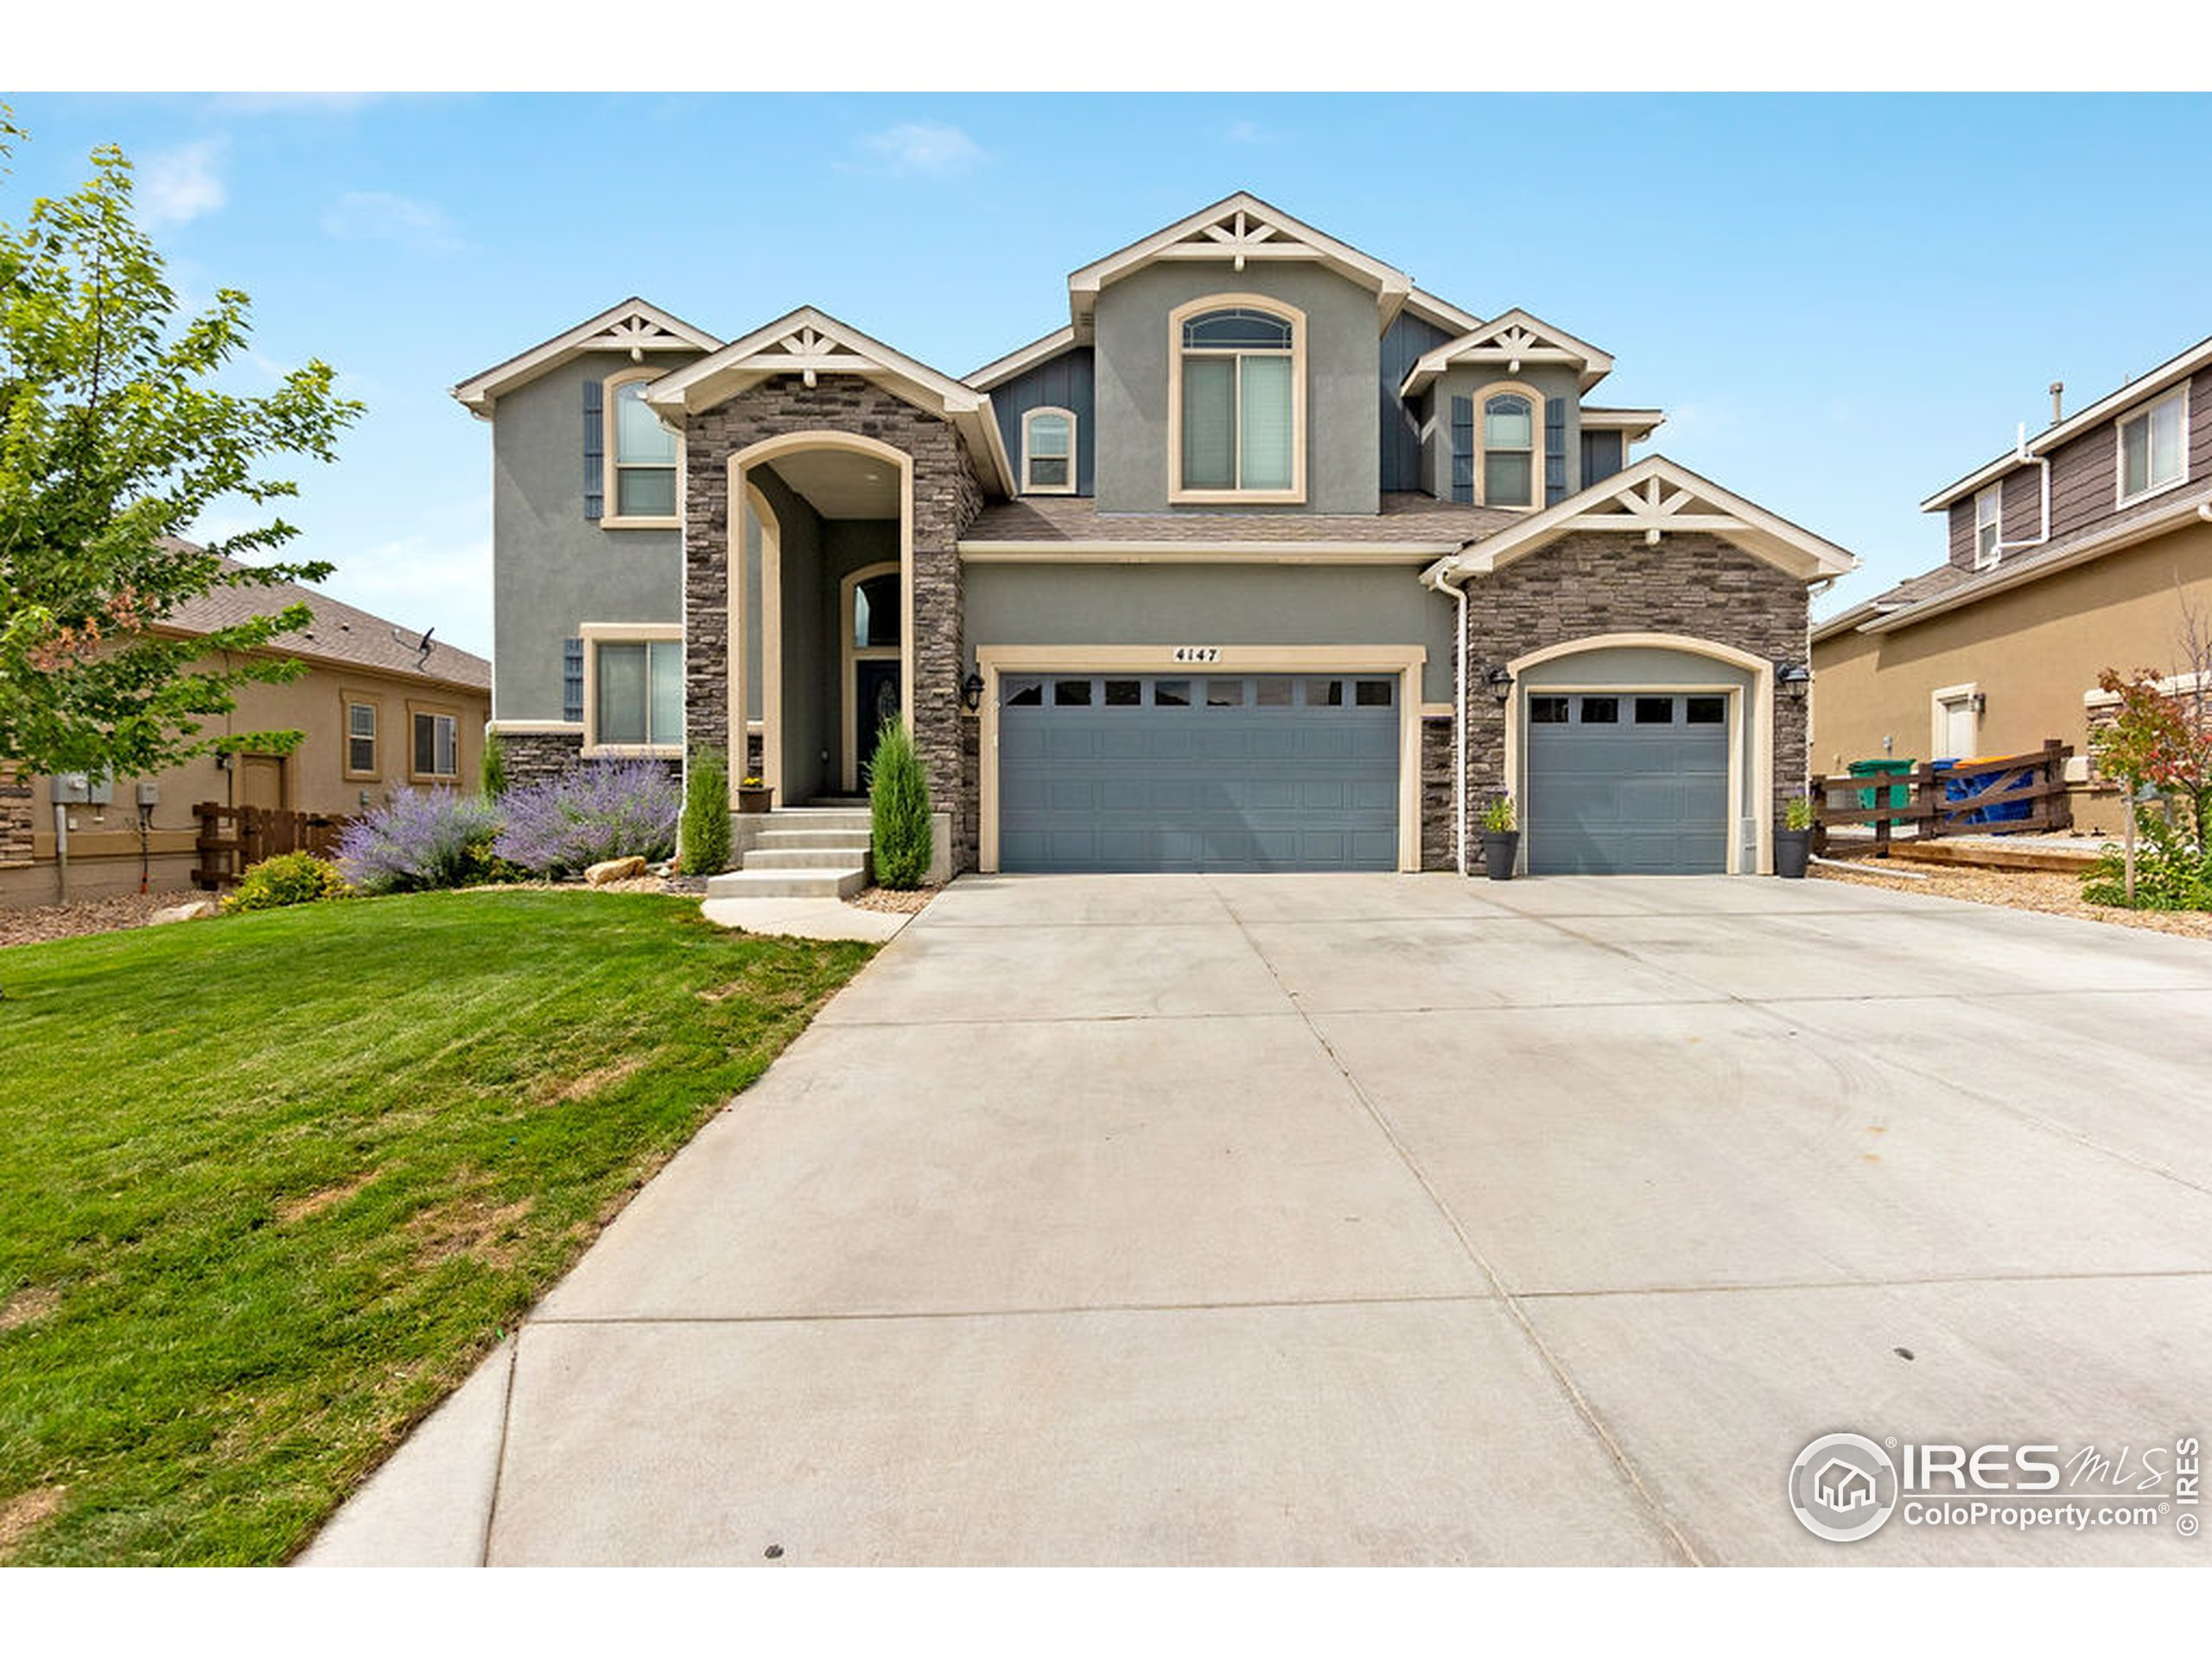 4147 Carroway Seed Dr, Johnstown, CO 80534